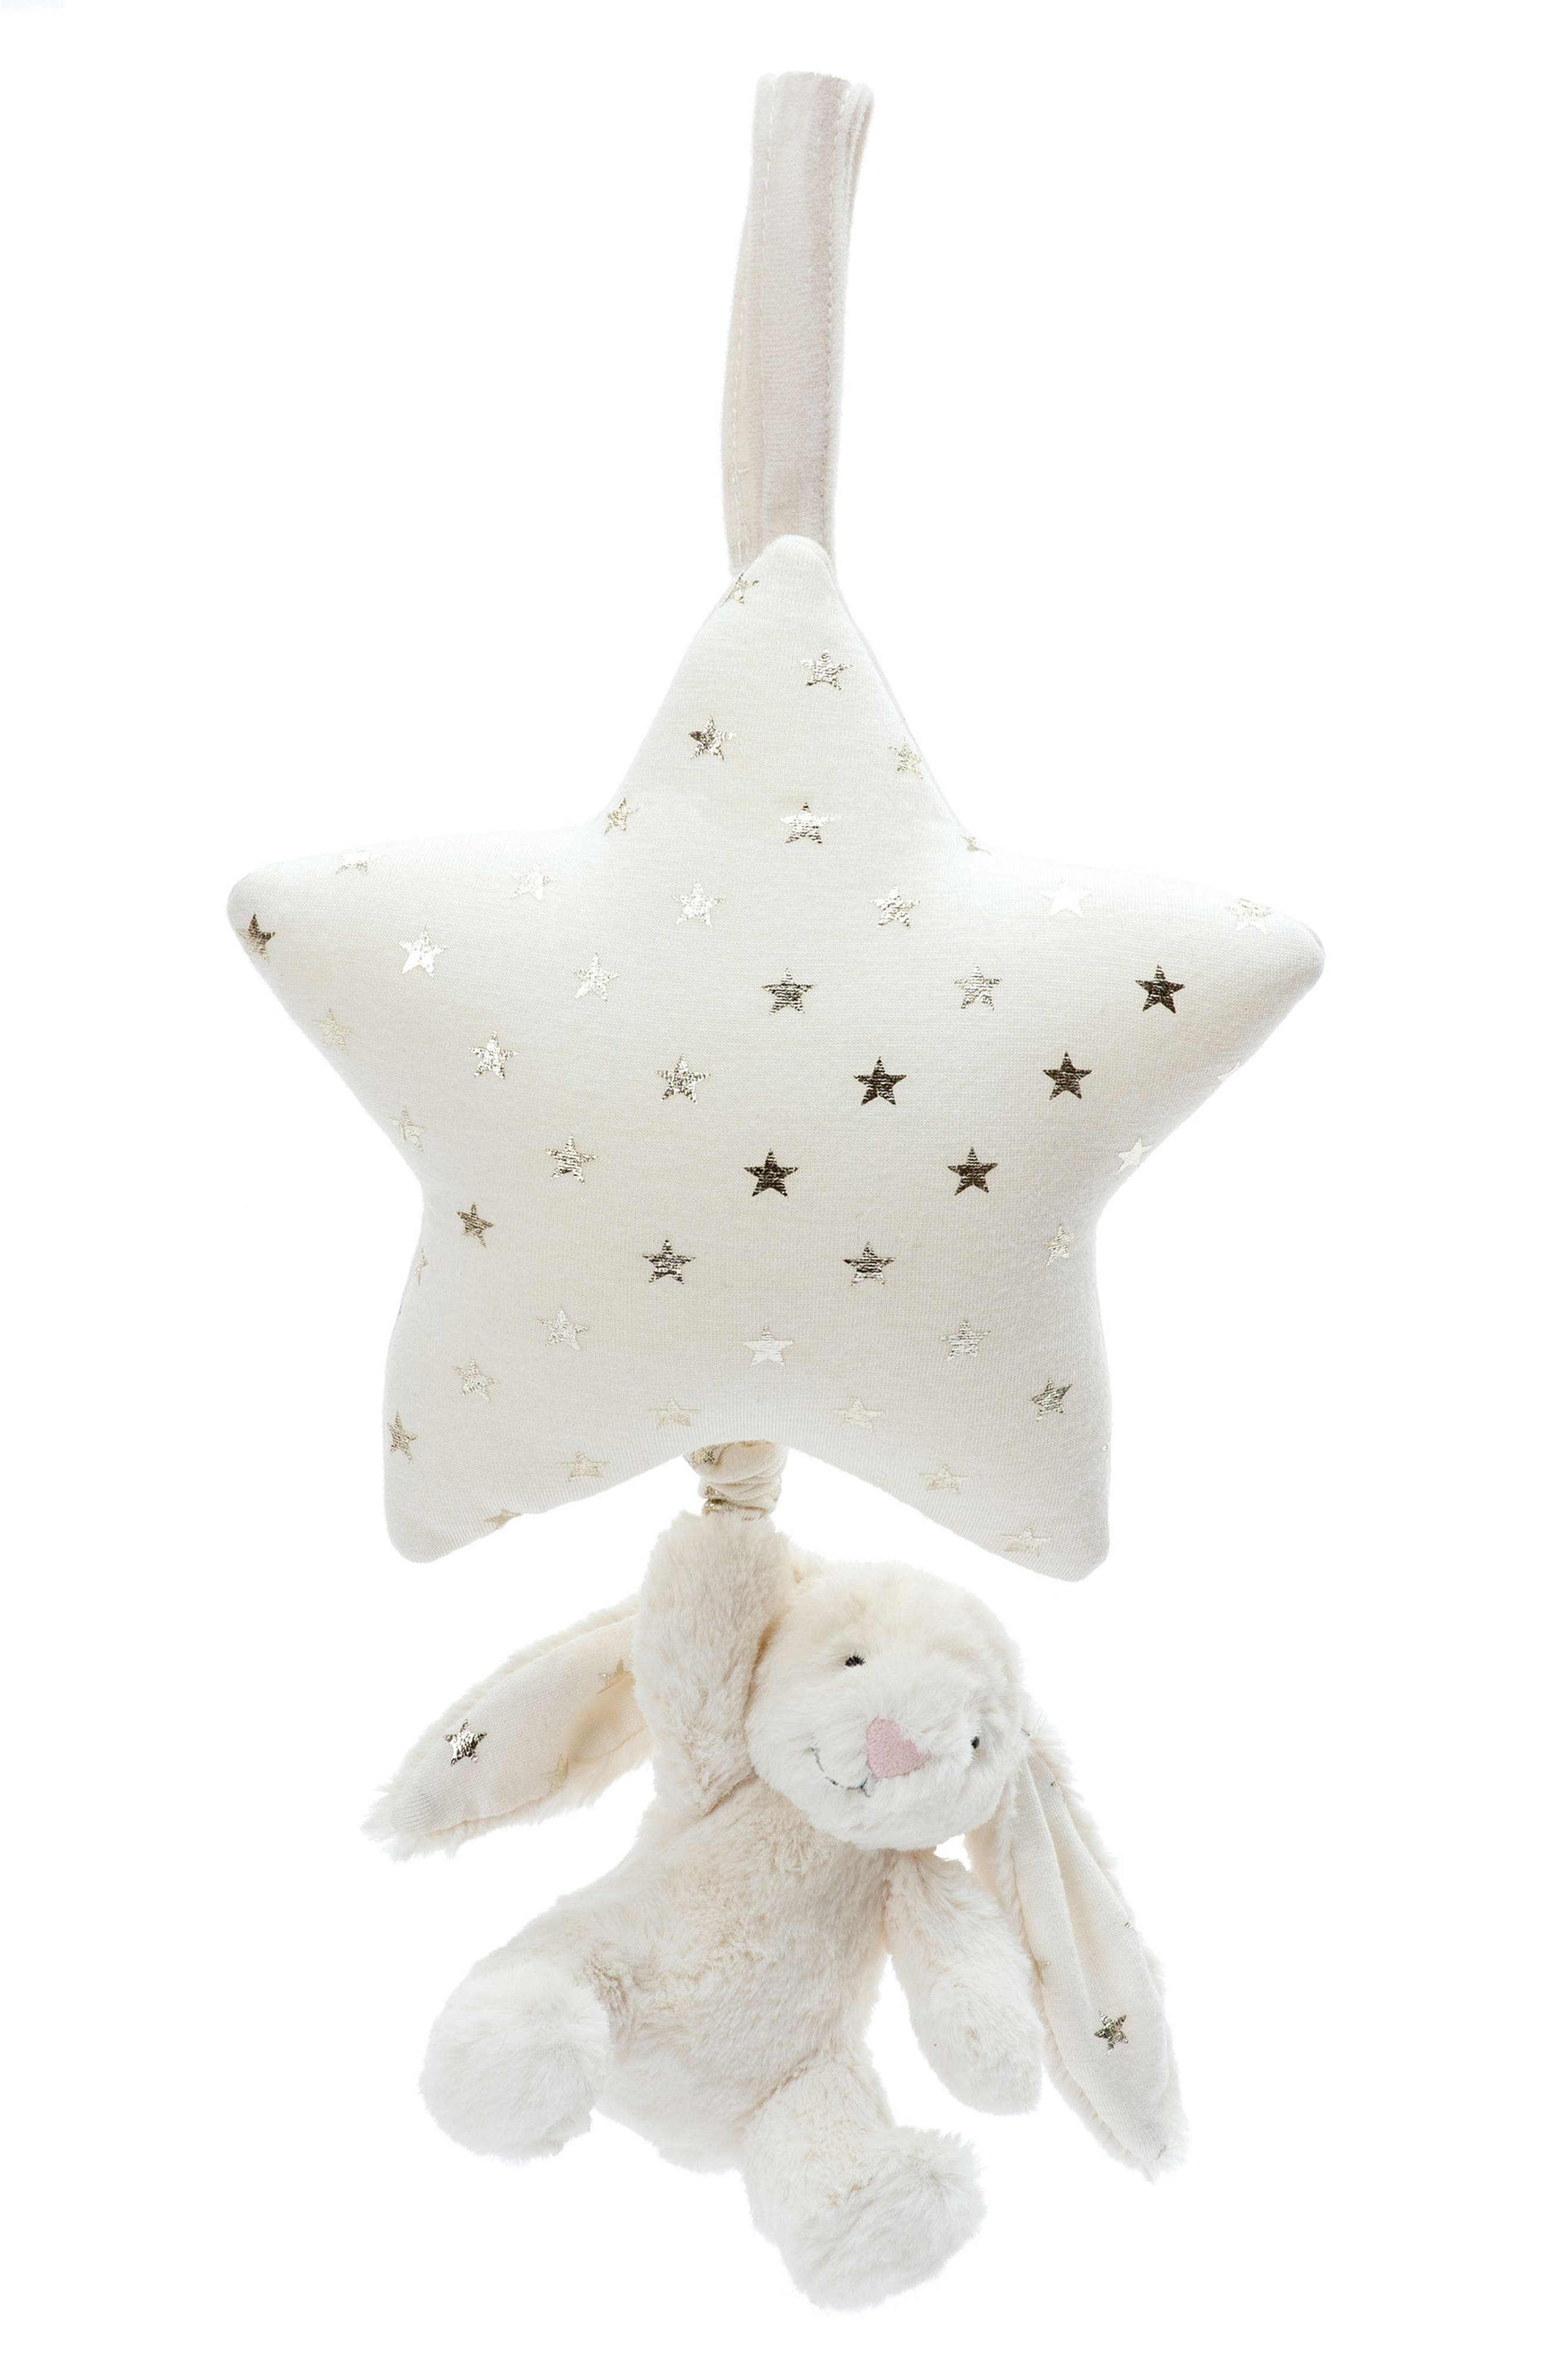 Jellycat Twinkle Bunny Musical Pull